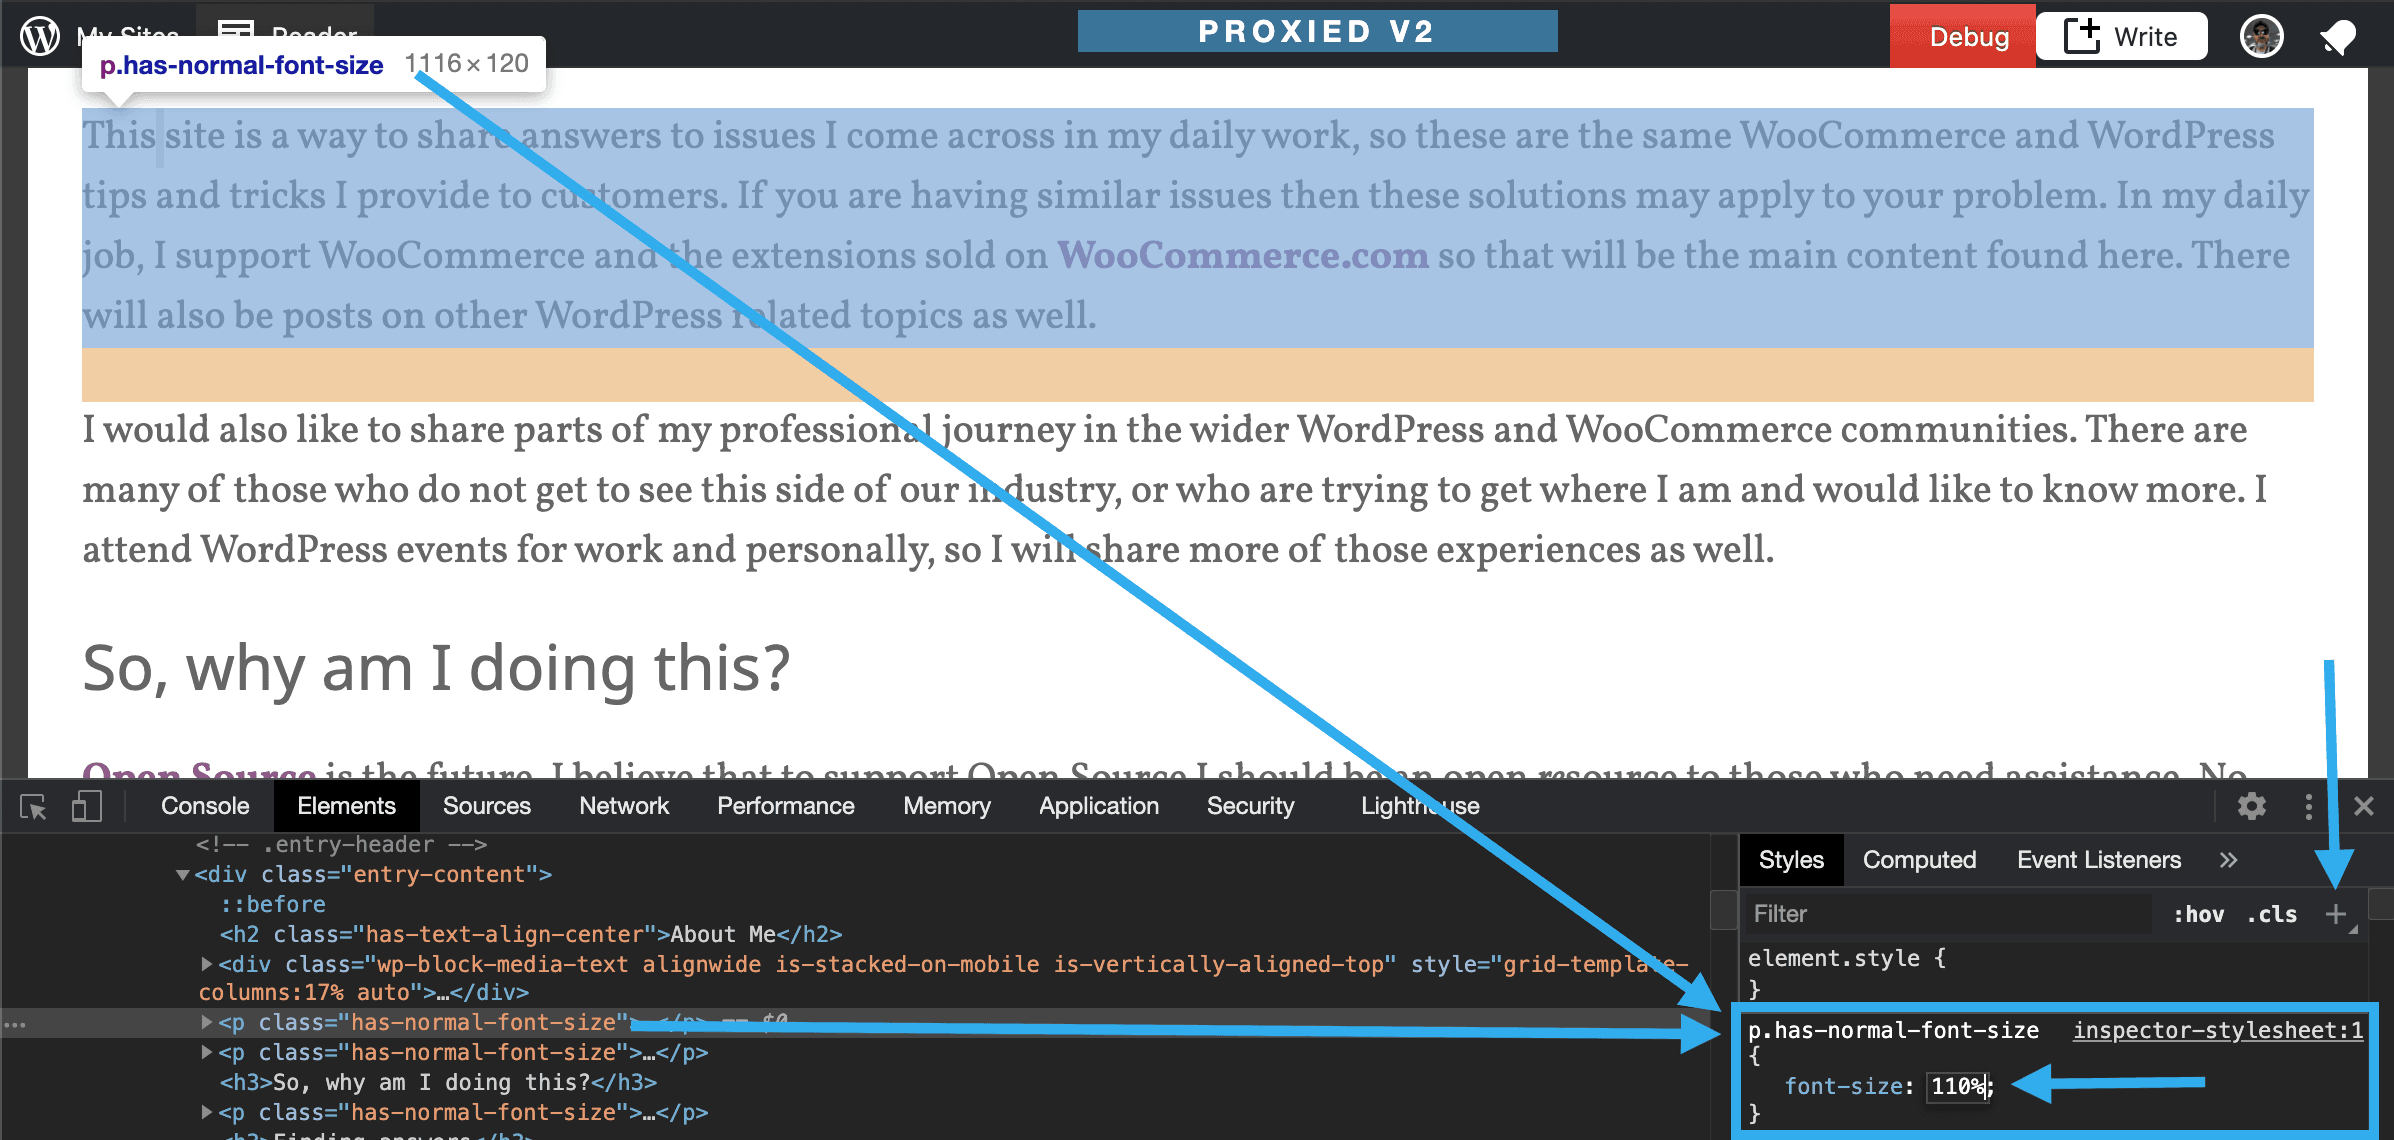 Adding a temporary CSS rule to the Inspector module and highlighting how all of the code and content connect